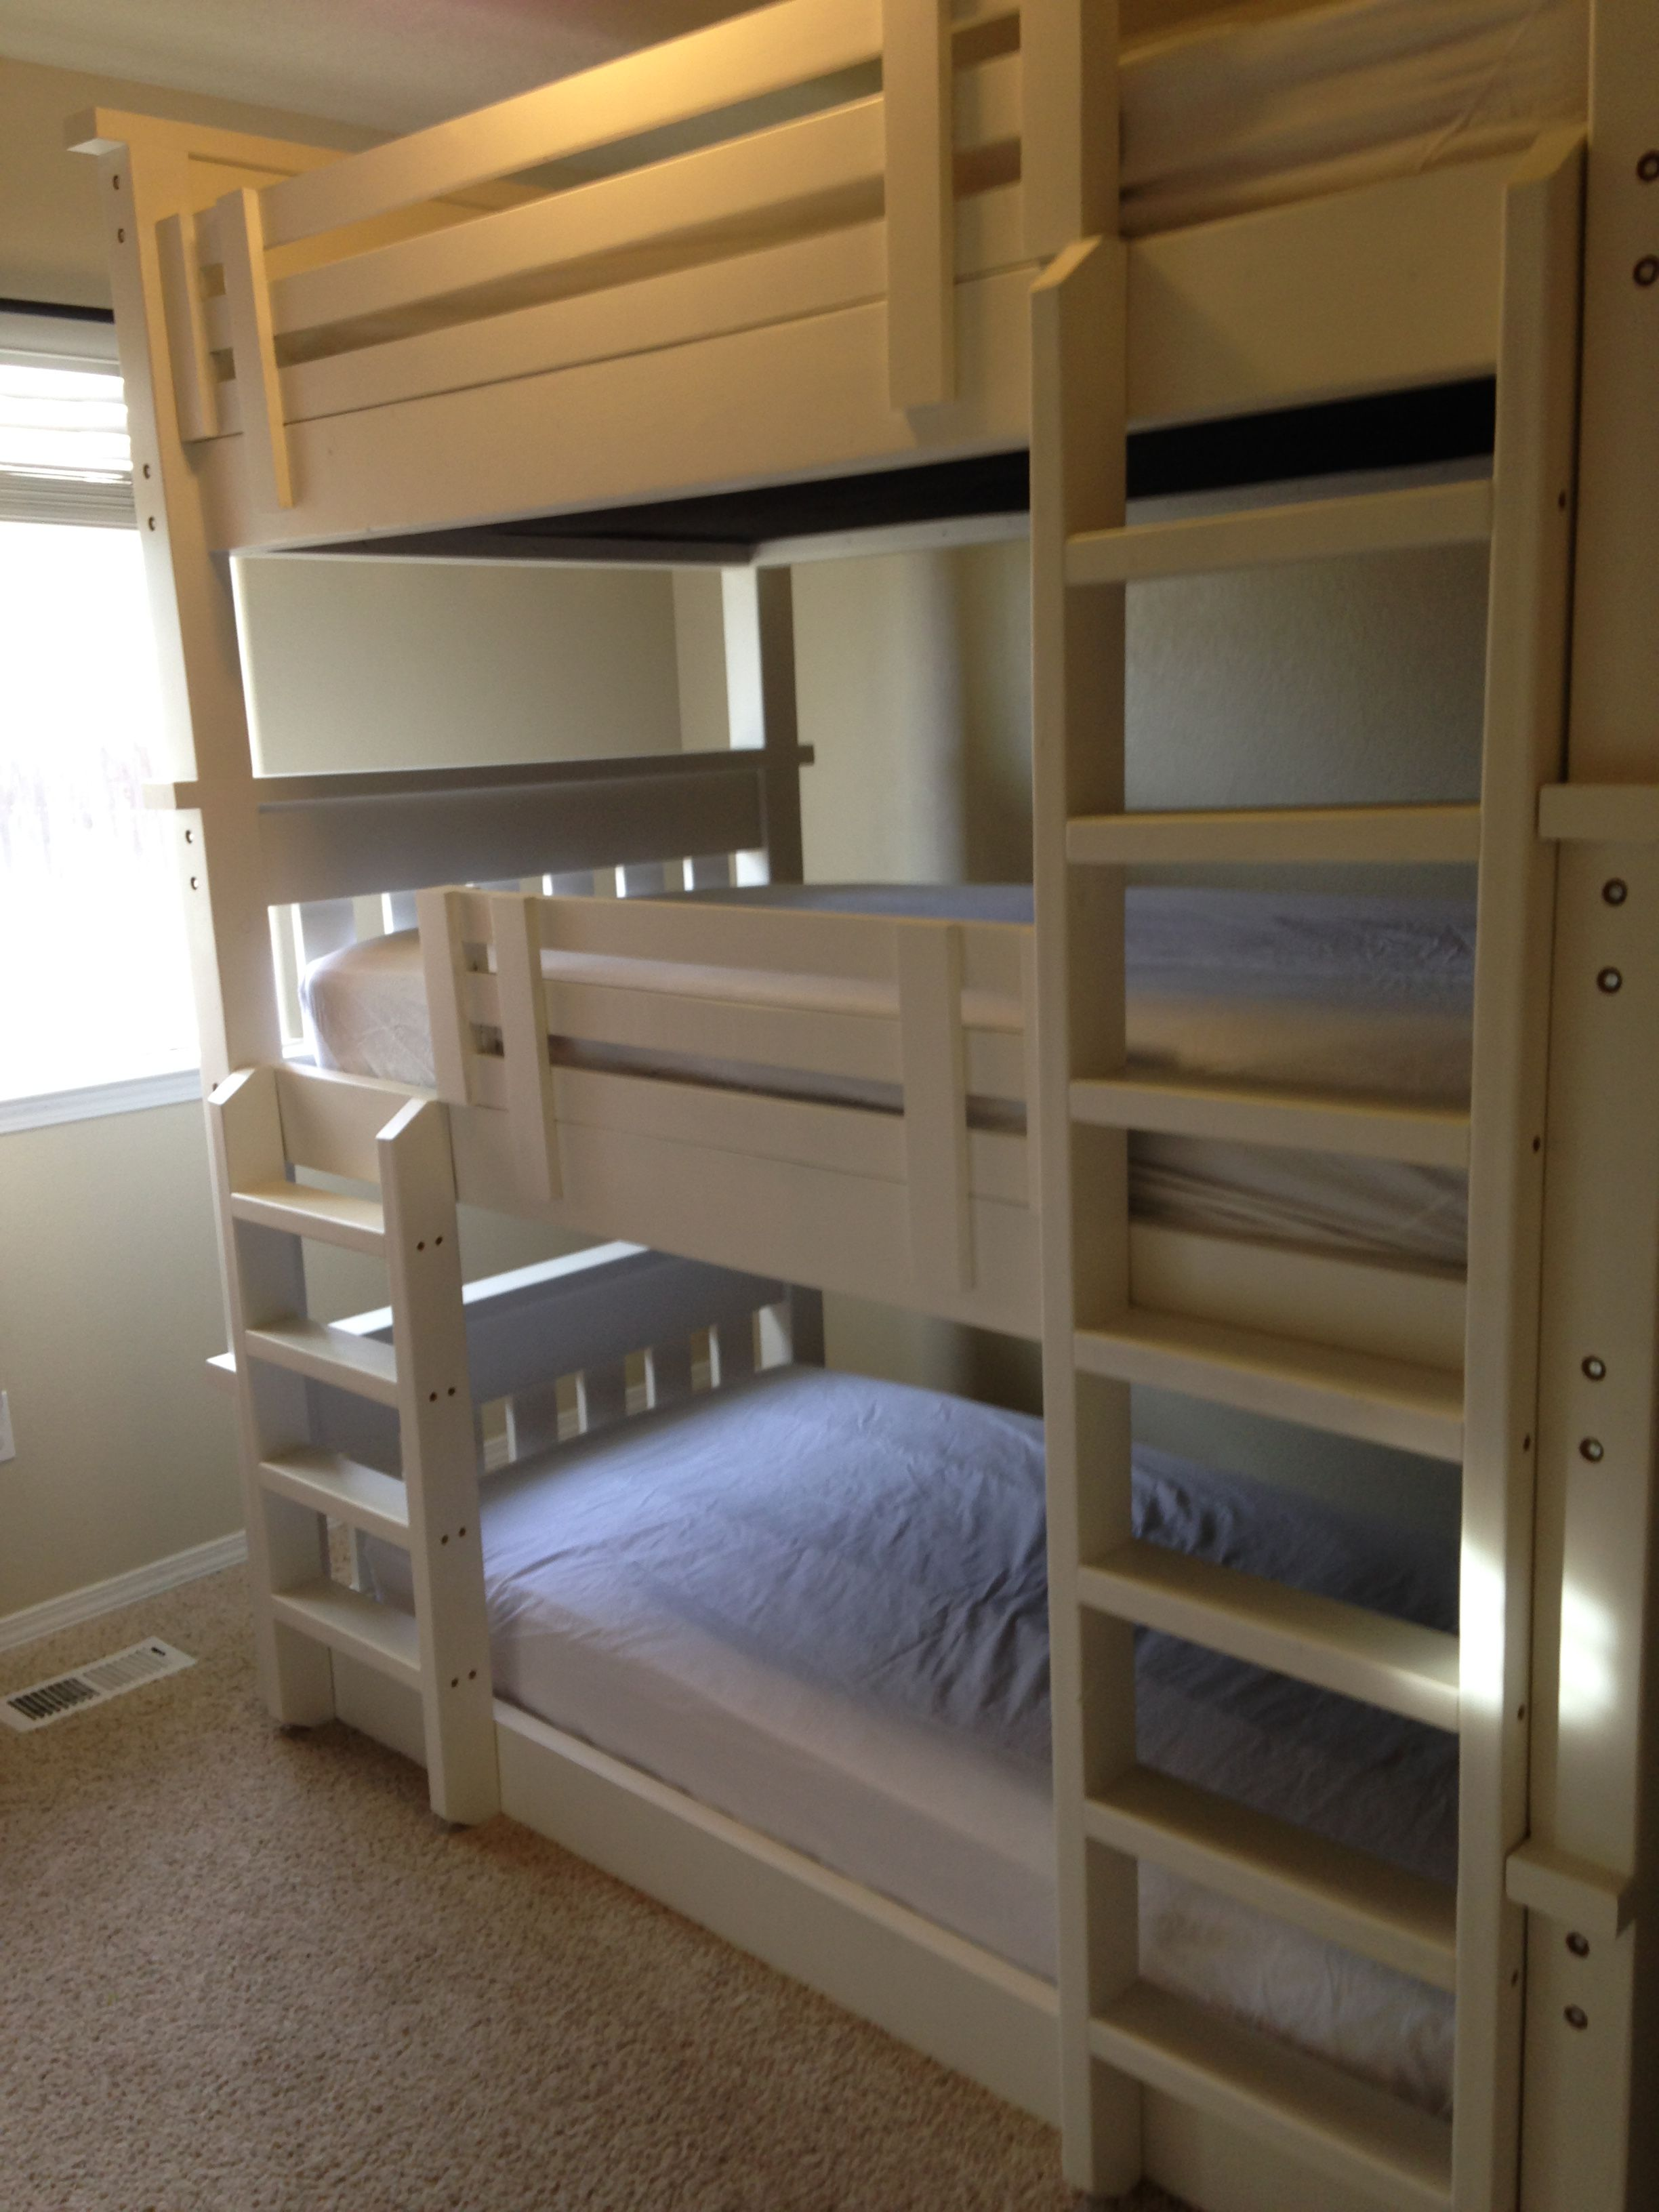 simple bunk bed triple bunk do it yourself home projects from ana white budget pinterest. Black Bedroom Furniture Sets. Home Design Ideas